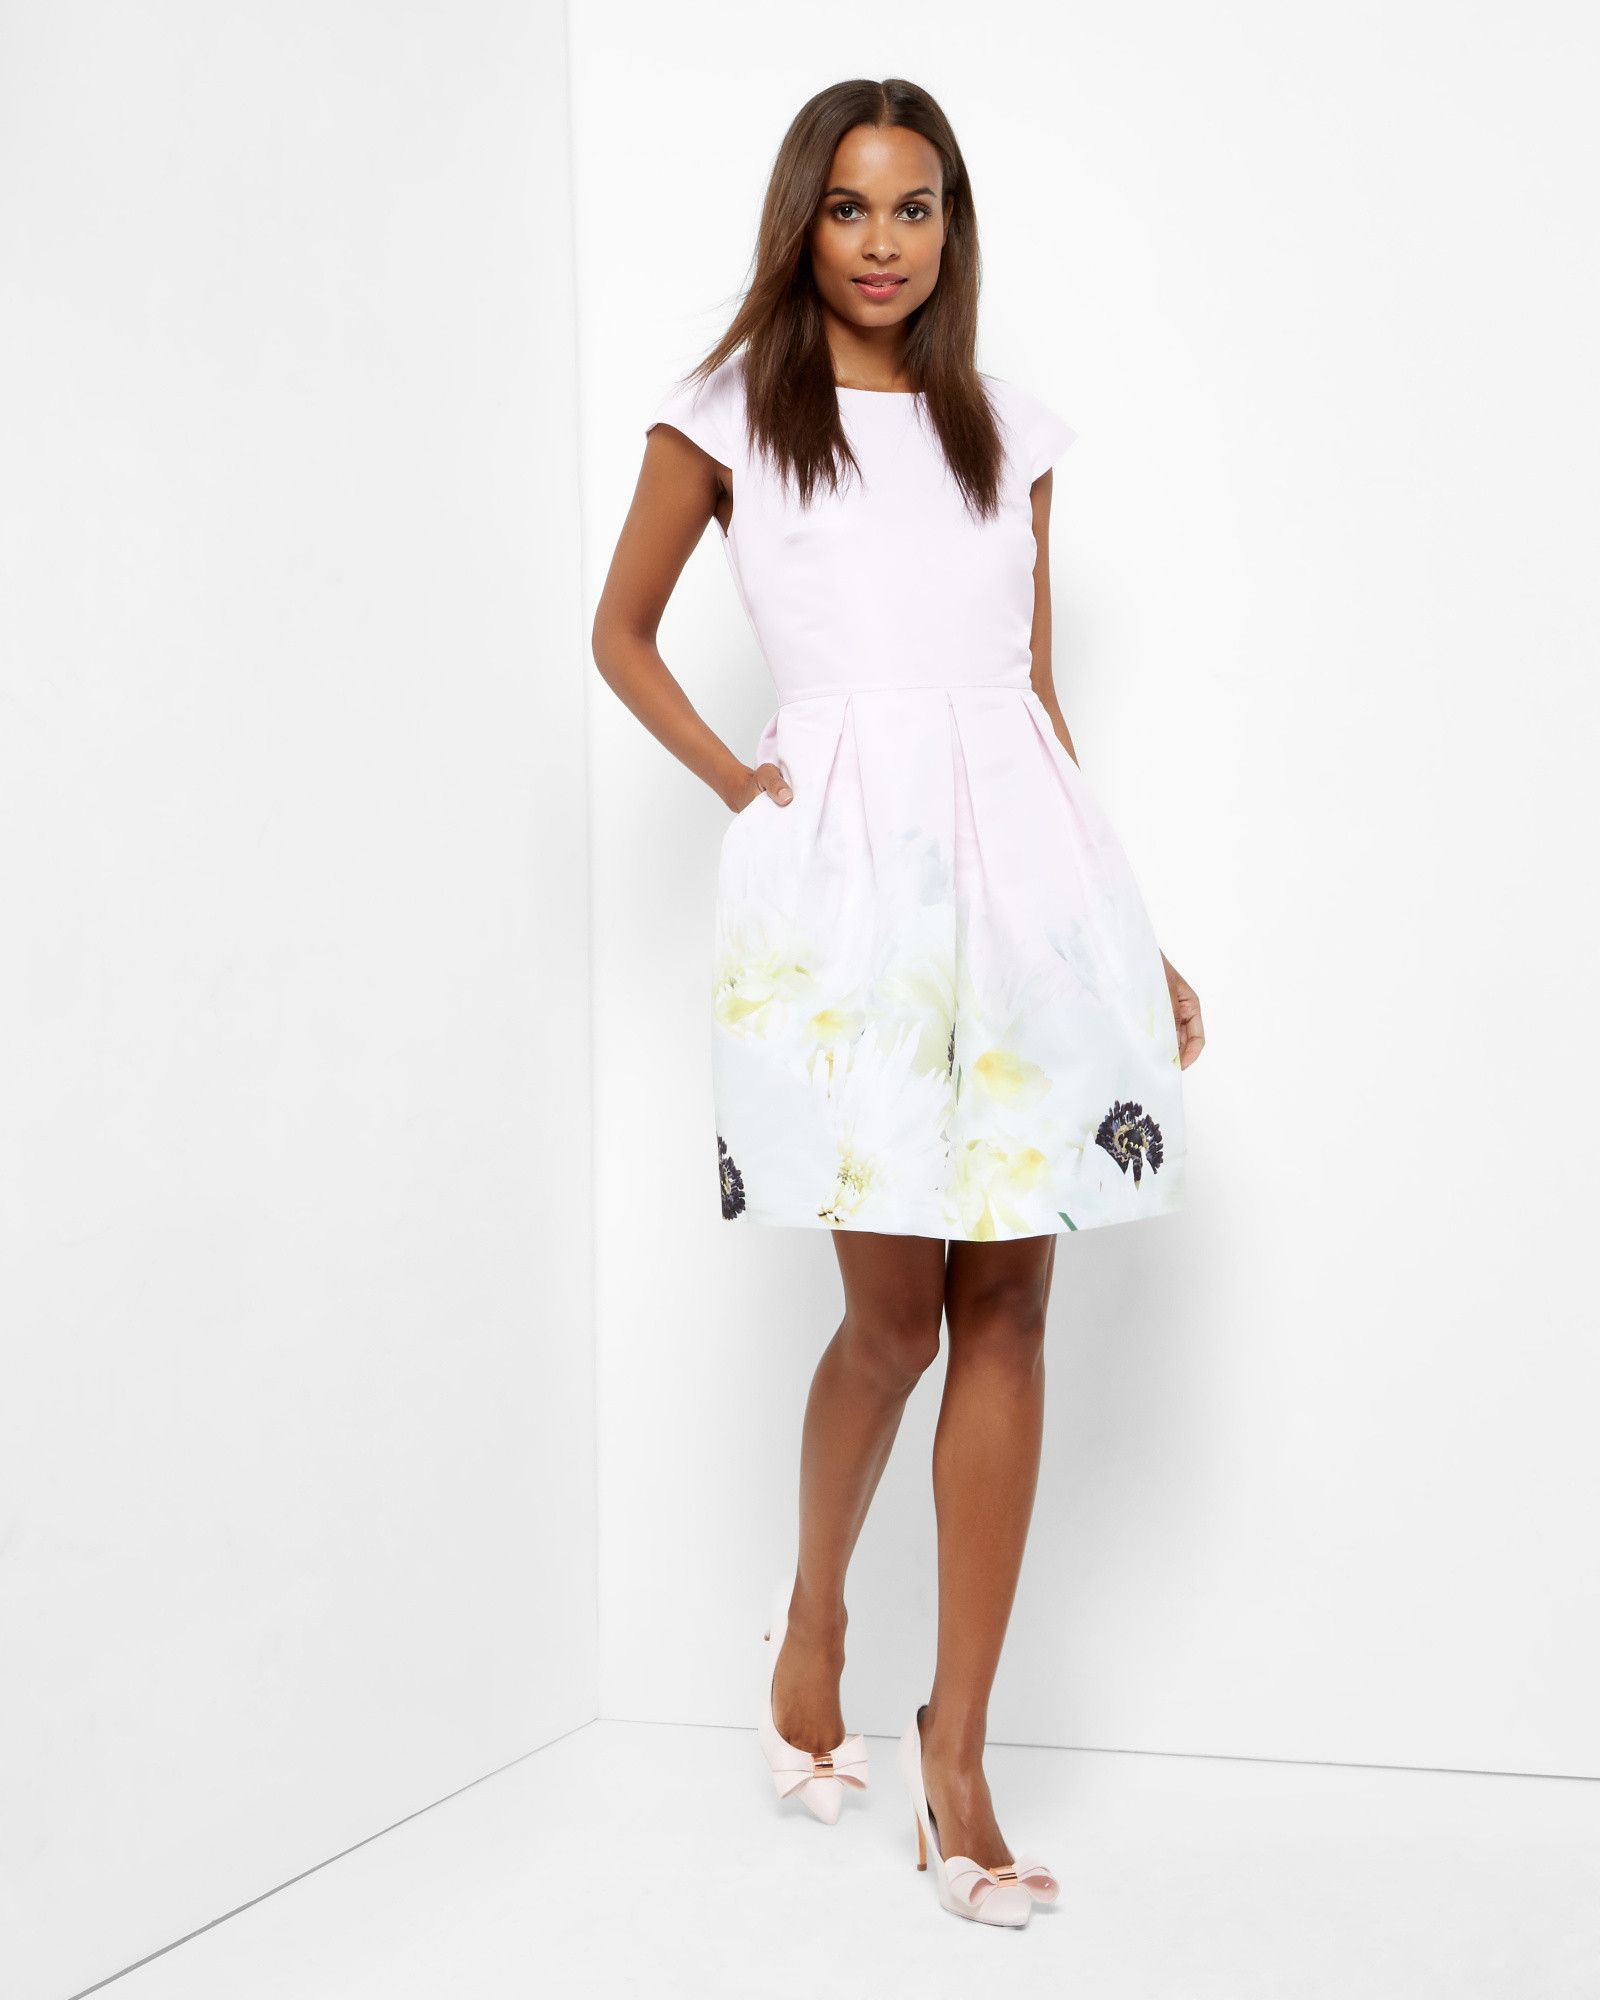 Dresses to wear to a wedding as a guest in summer  Ted Baker Pearly Petal pleated dress Pink  Products